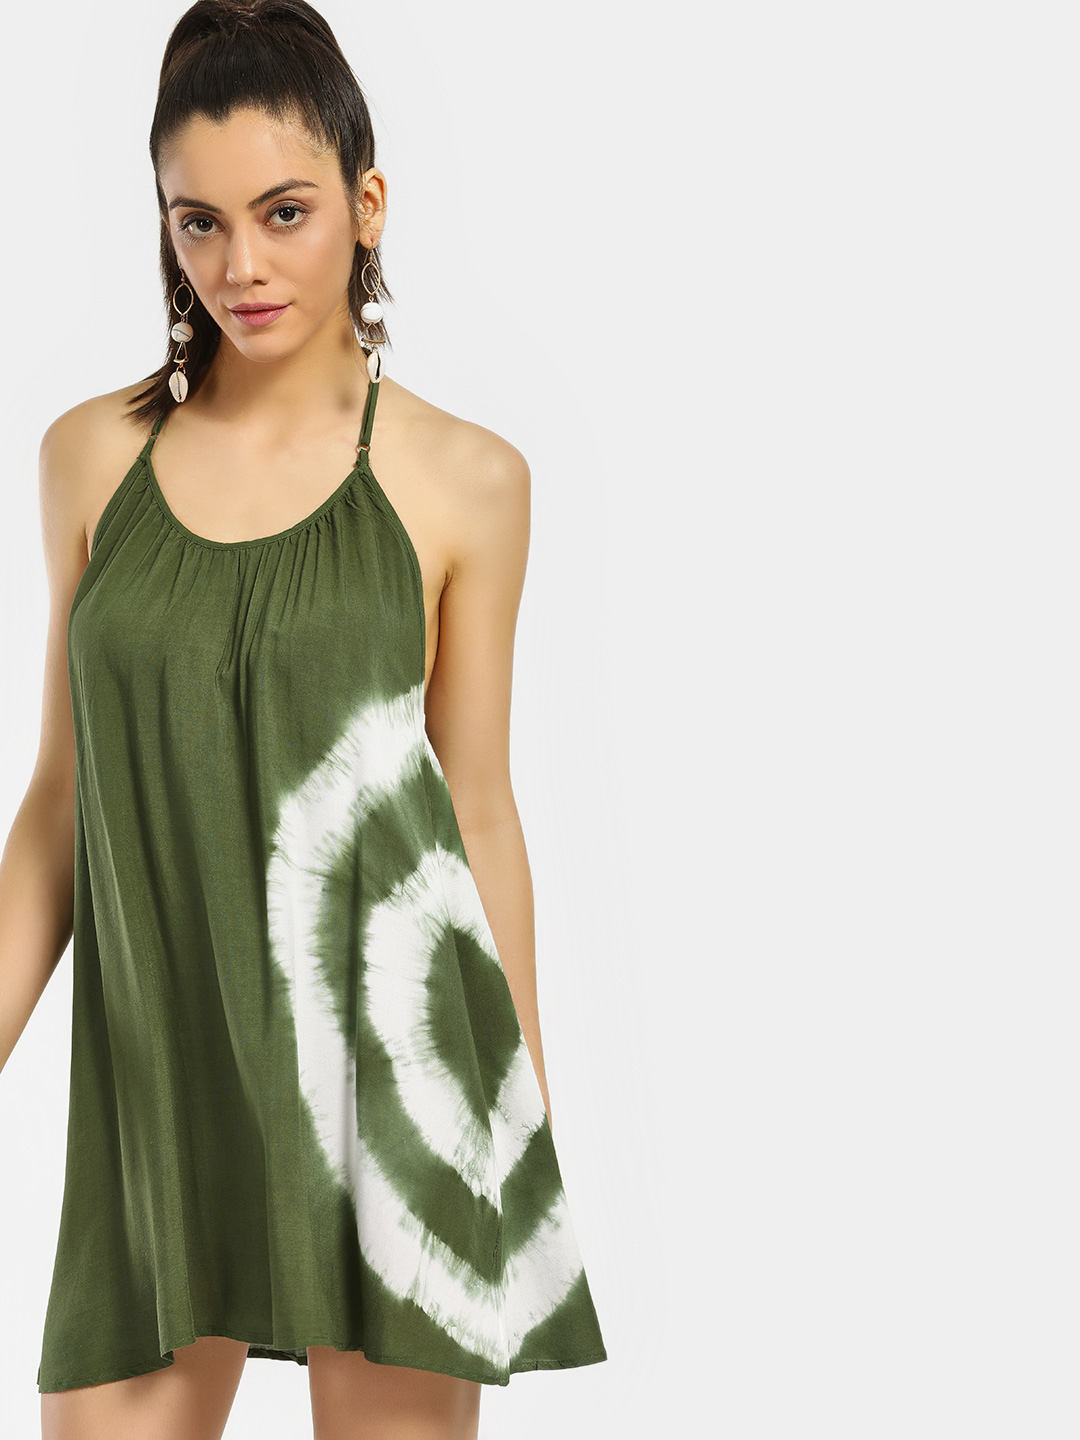 Iris Olive Tie Dye Shift Dress 1